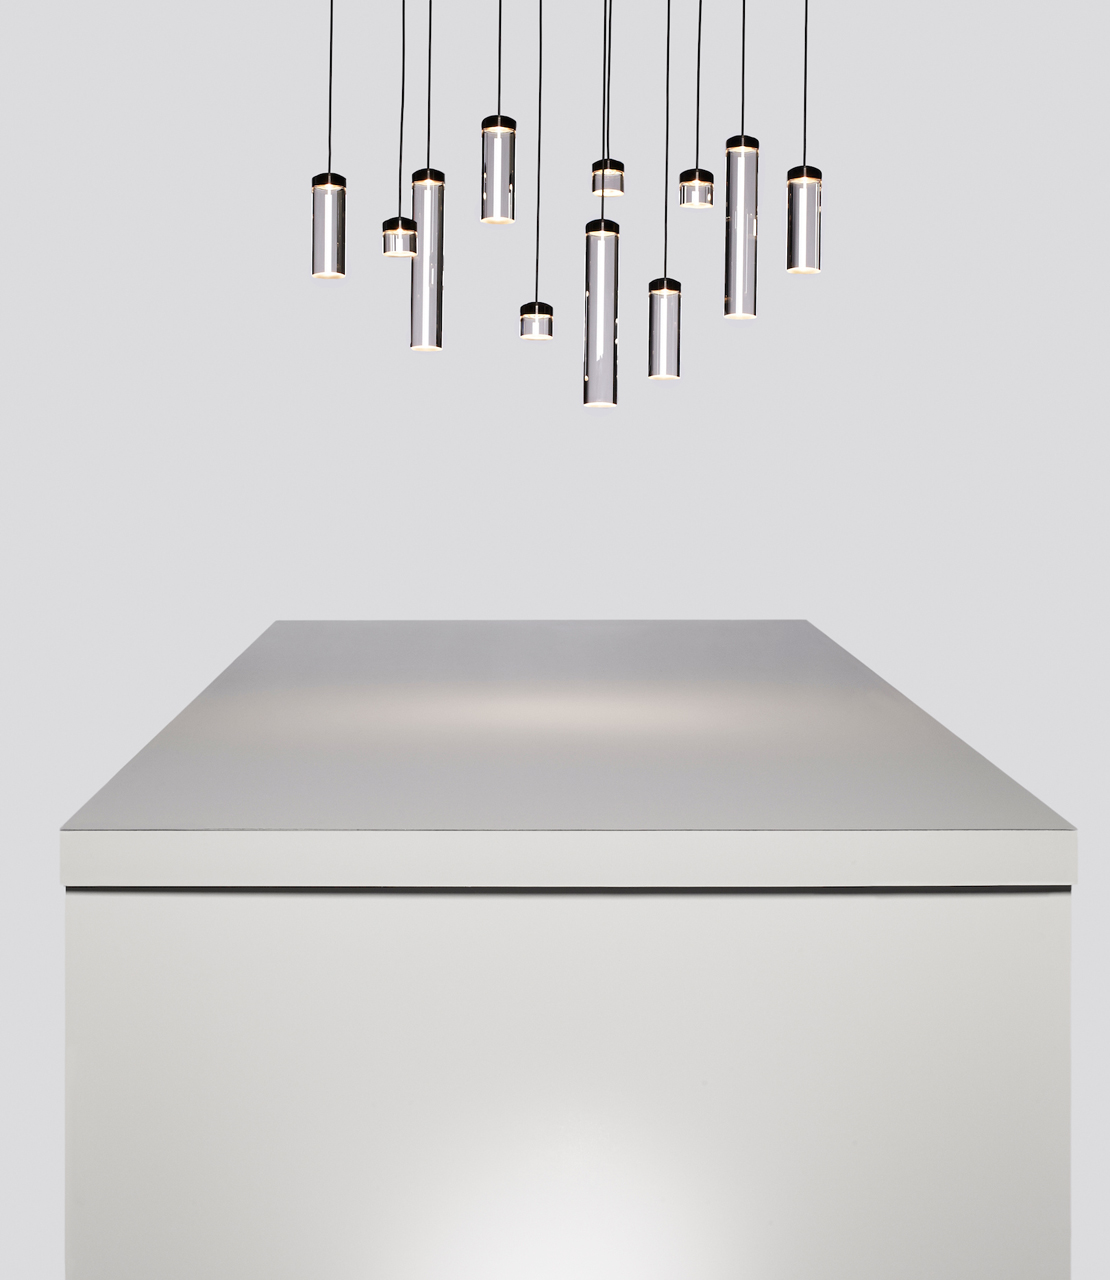 Vessel-Light-Todd-Bracher-3M-2